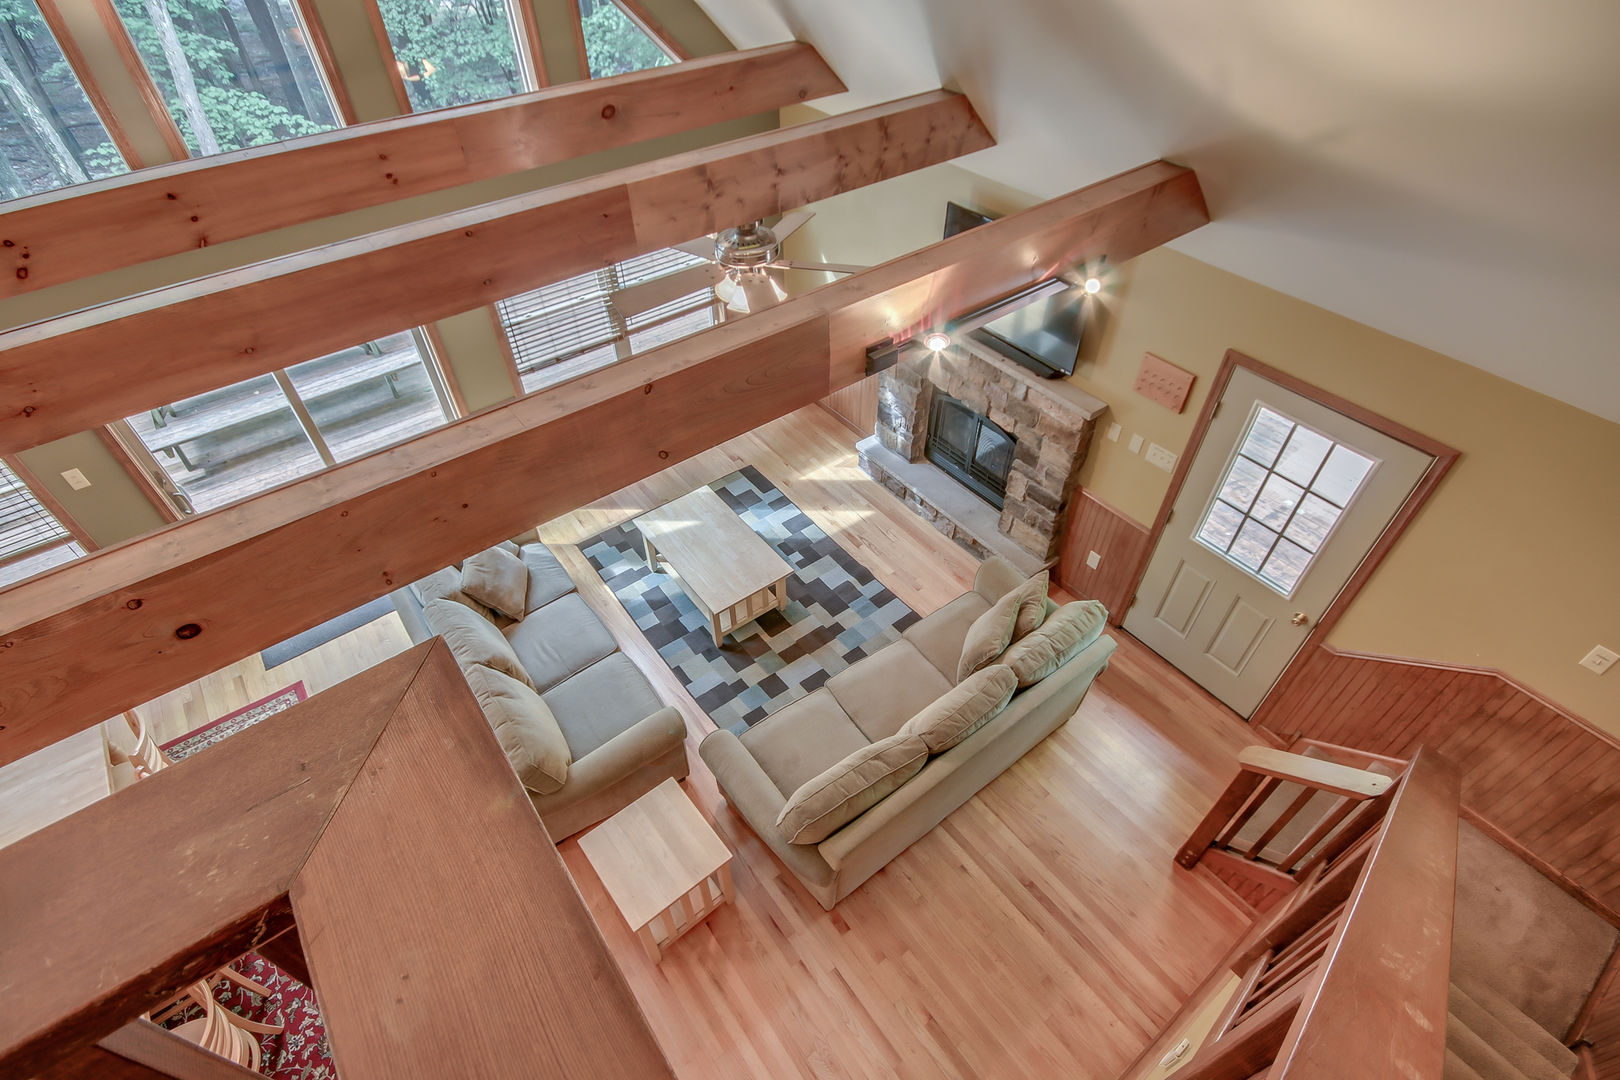 An Image From Upstairs Facing the Living Room.